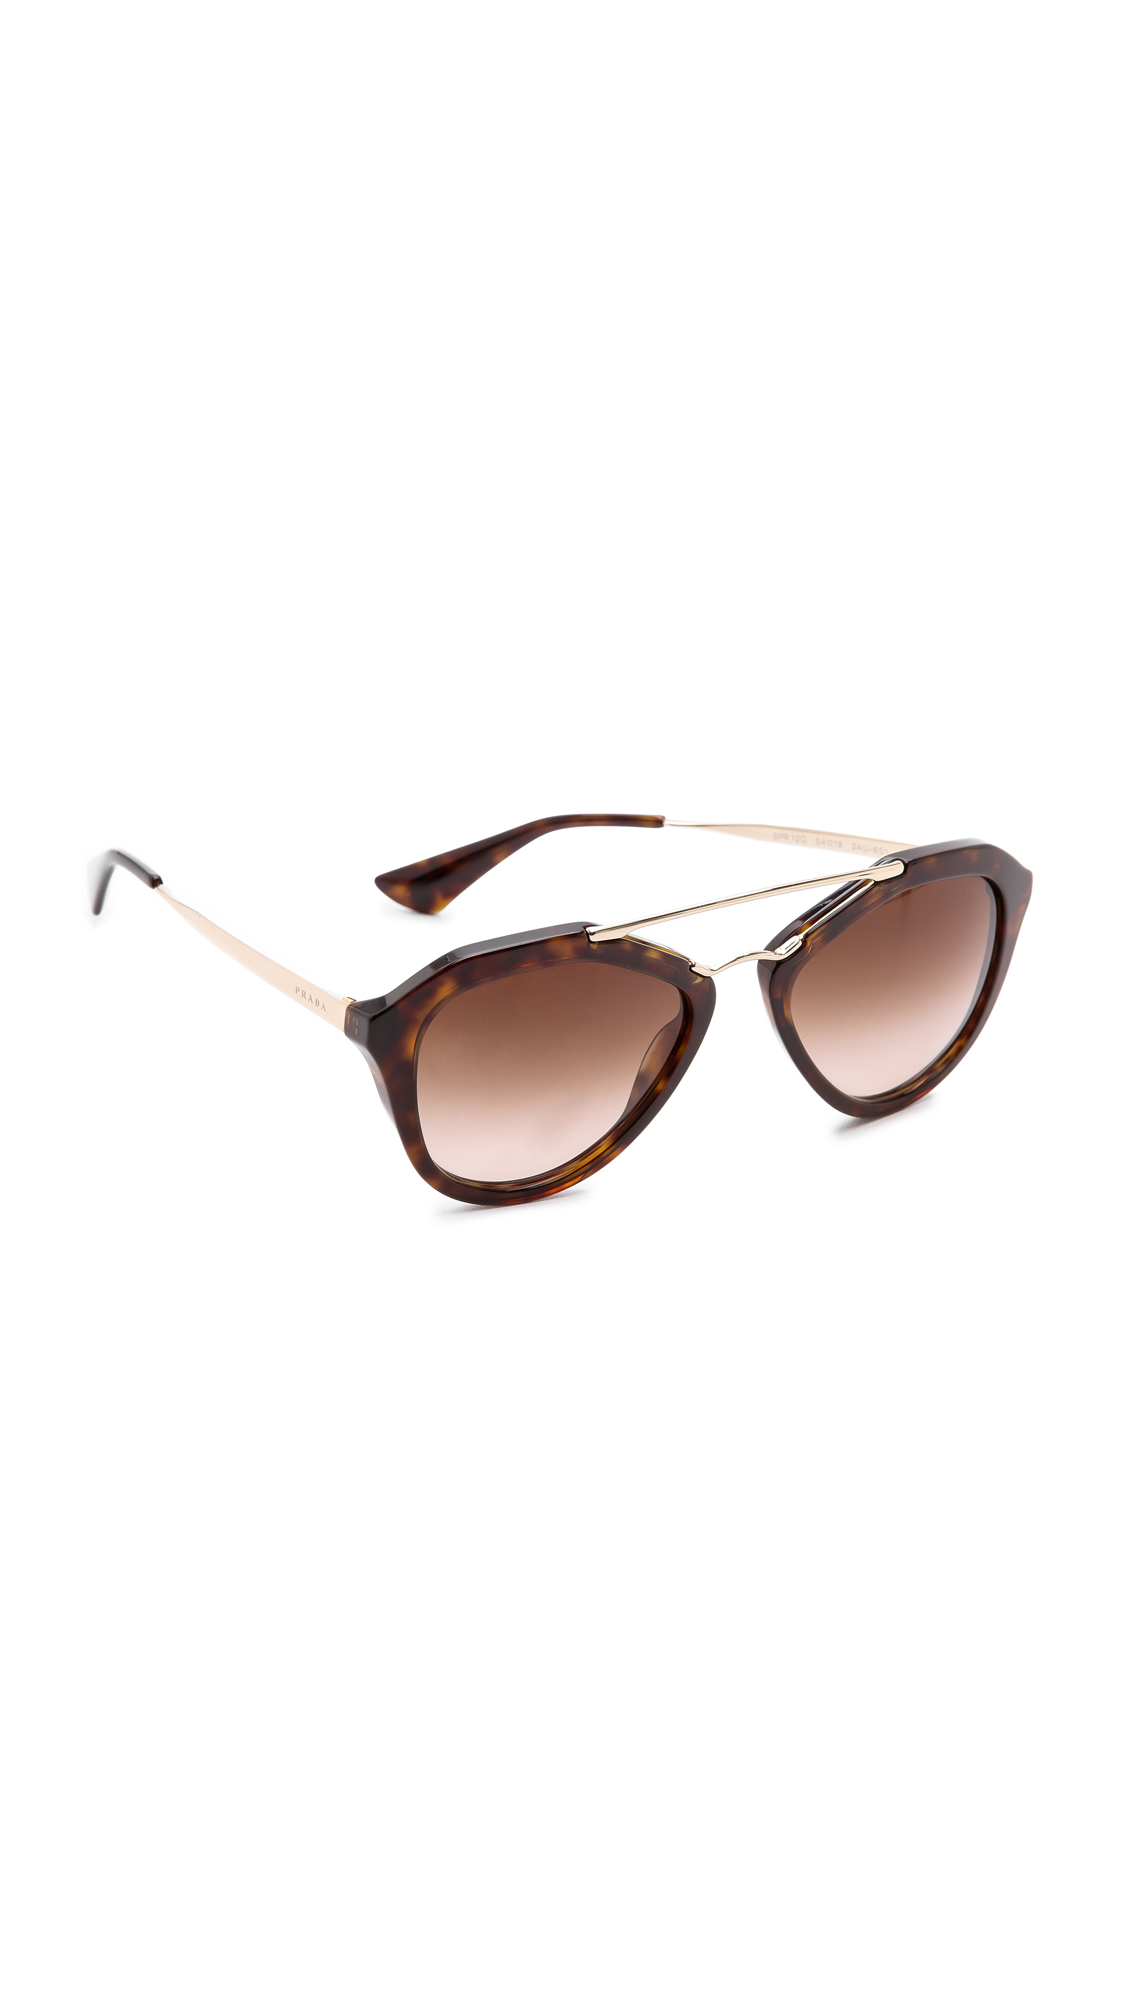 Prada Aviator Sunglasses - Brown/Brown at Shopbop